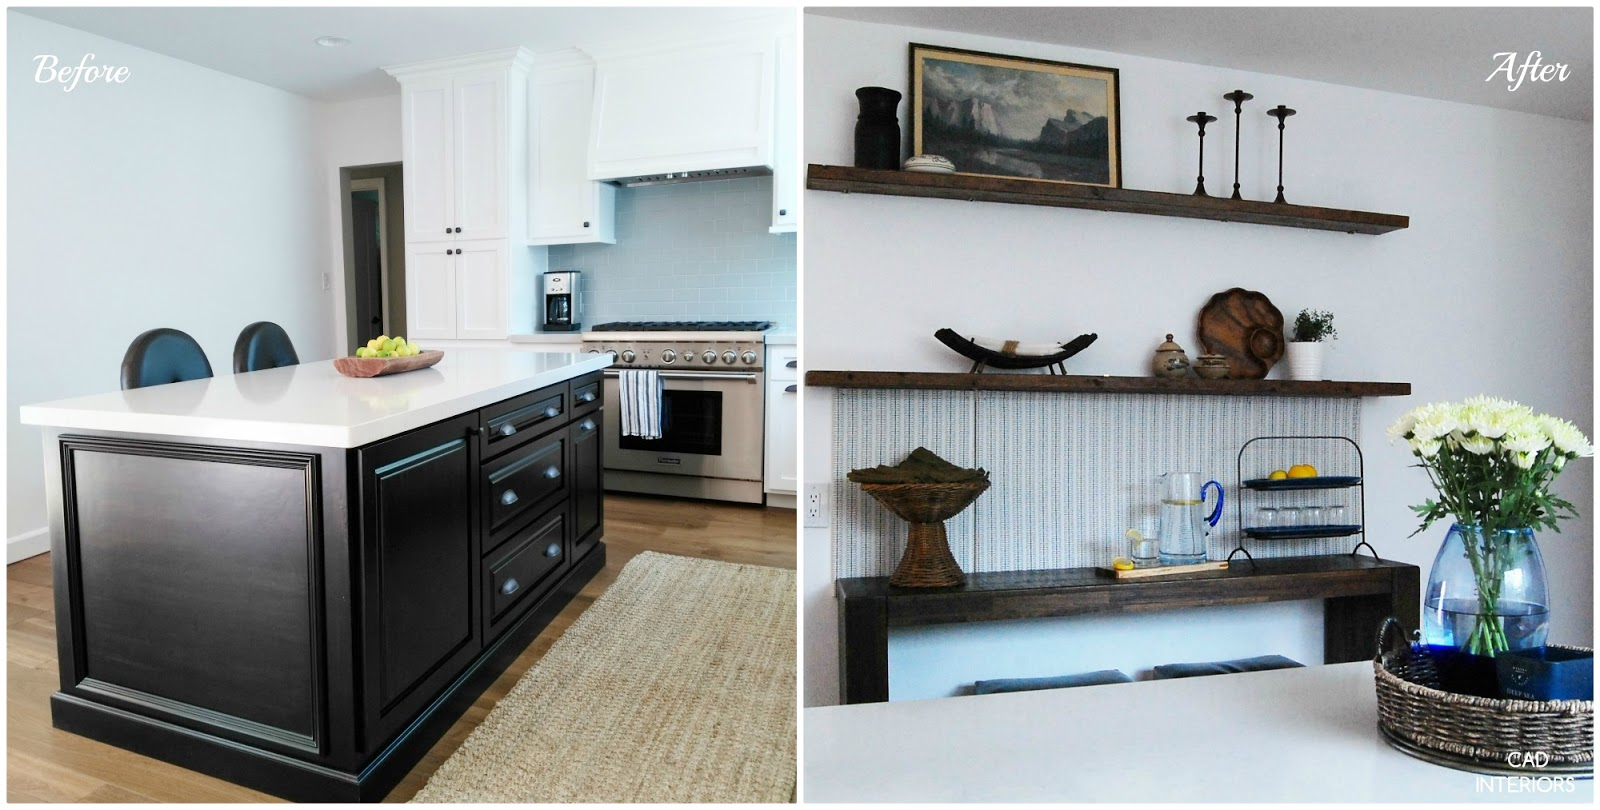 before and after kitchen wall diy transformation home improvement home office black white wood modern interior design